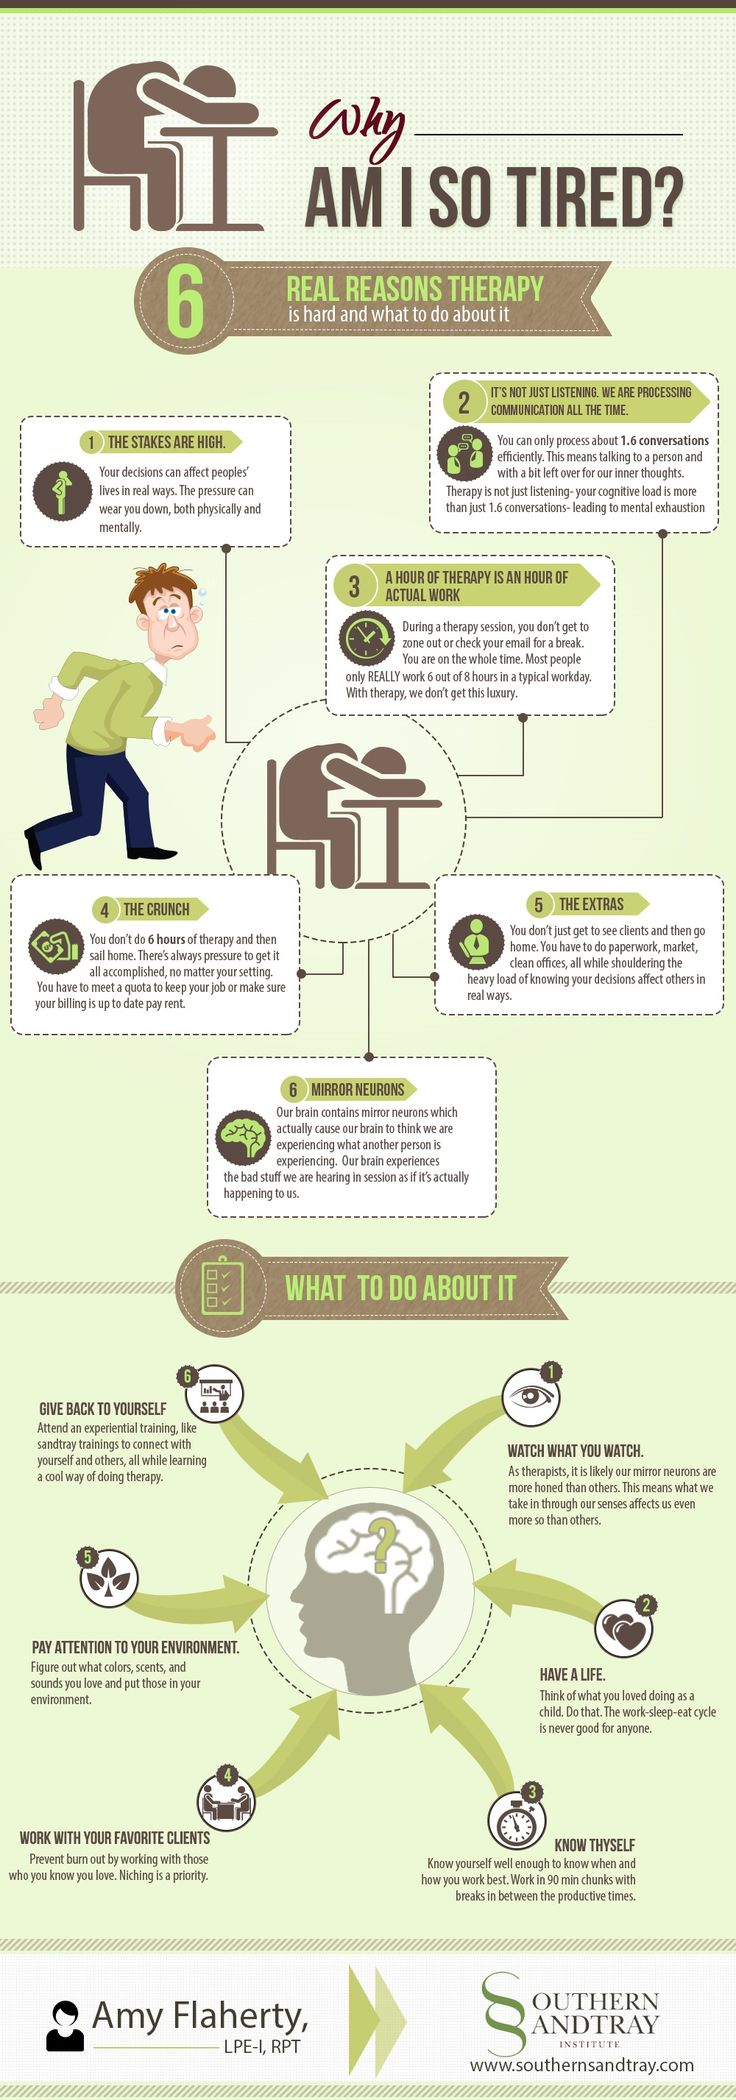 Last week Amy Flaherty, LPE-I, RPT wrote a guest post talking about the One Thing That Every Psychotherapist's Parnter Doesn't Get and she was kind enough to drop back in today to share an infographic she designed to continue the conversation. __________________ An Infographic by Amy E. Flaherty, LPE-I, RPT      ___________________  About the …